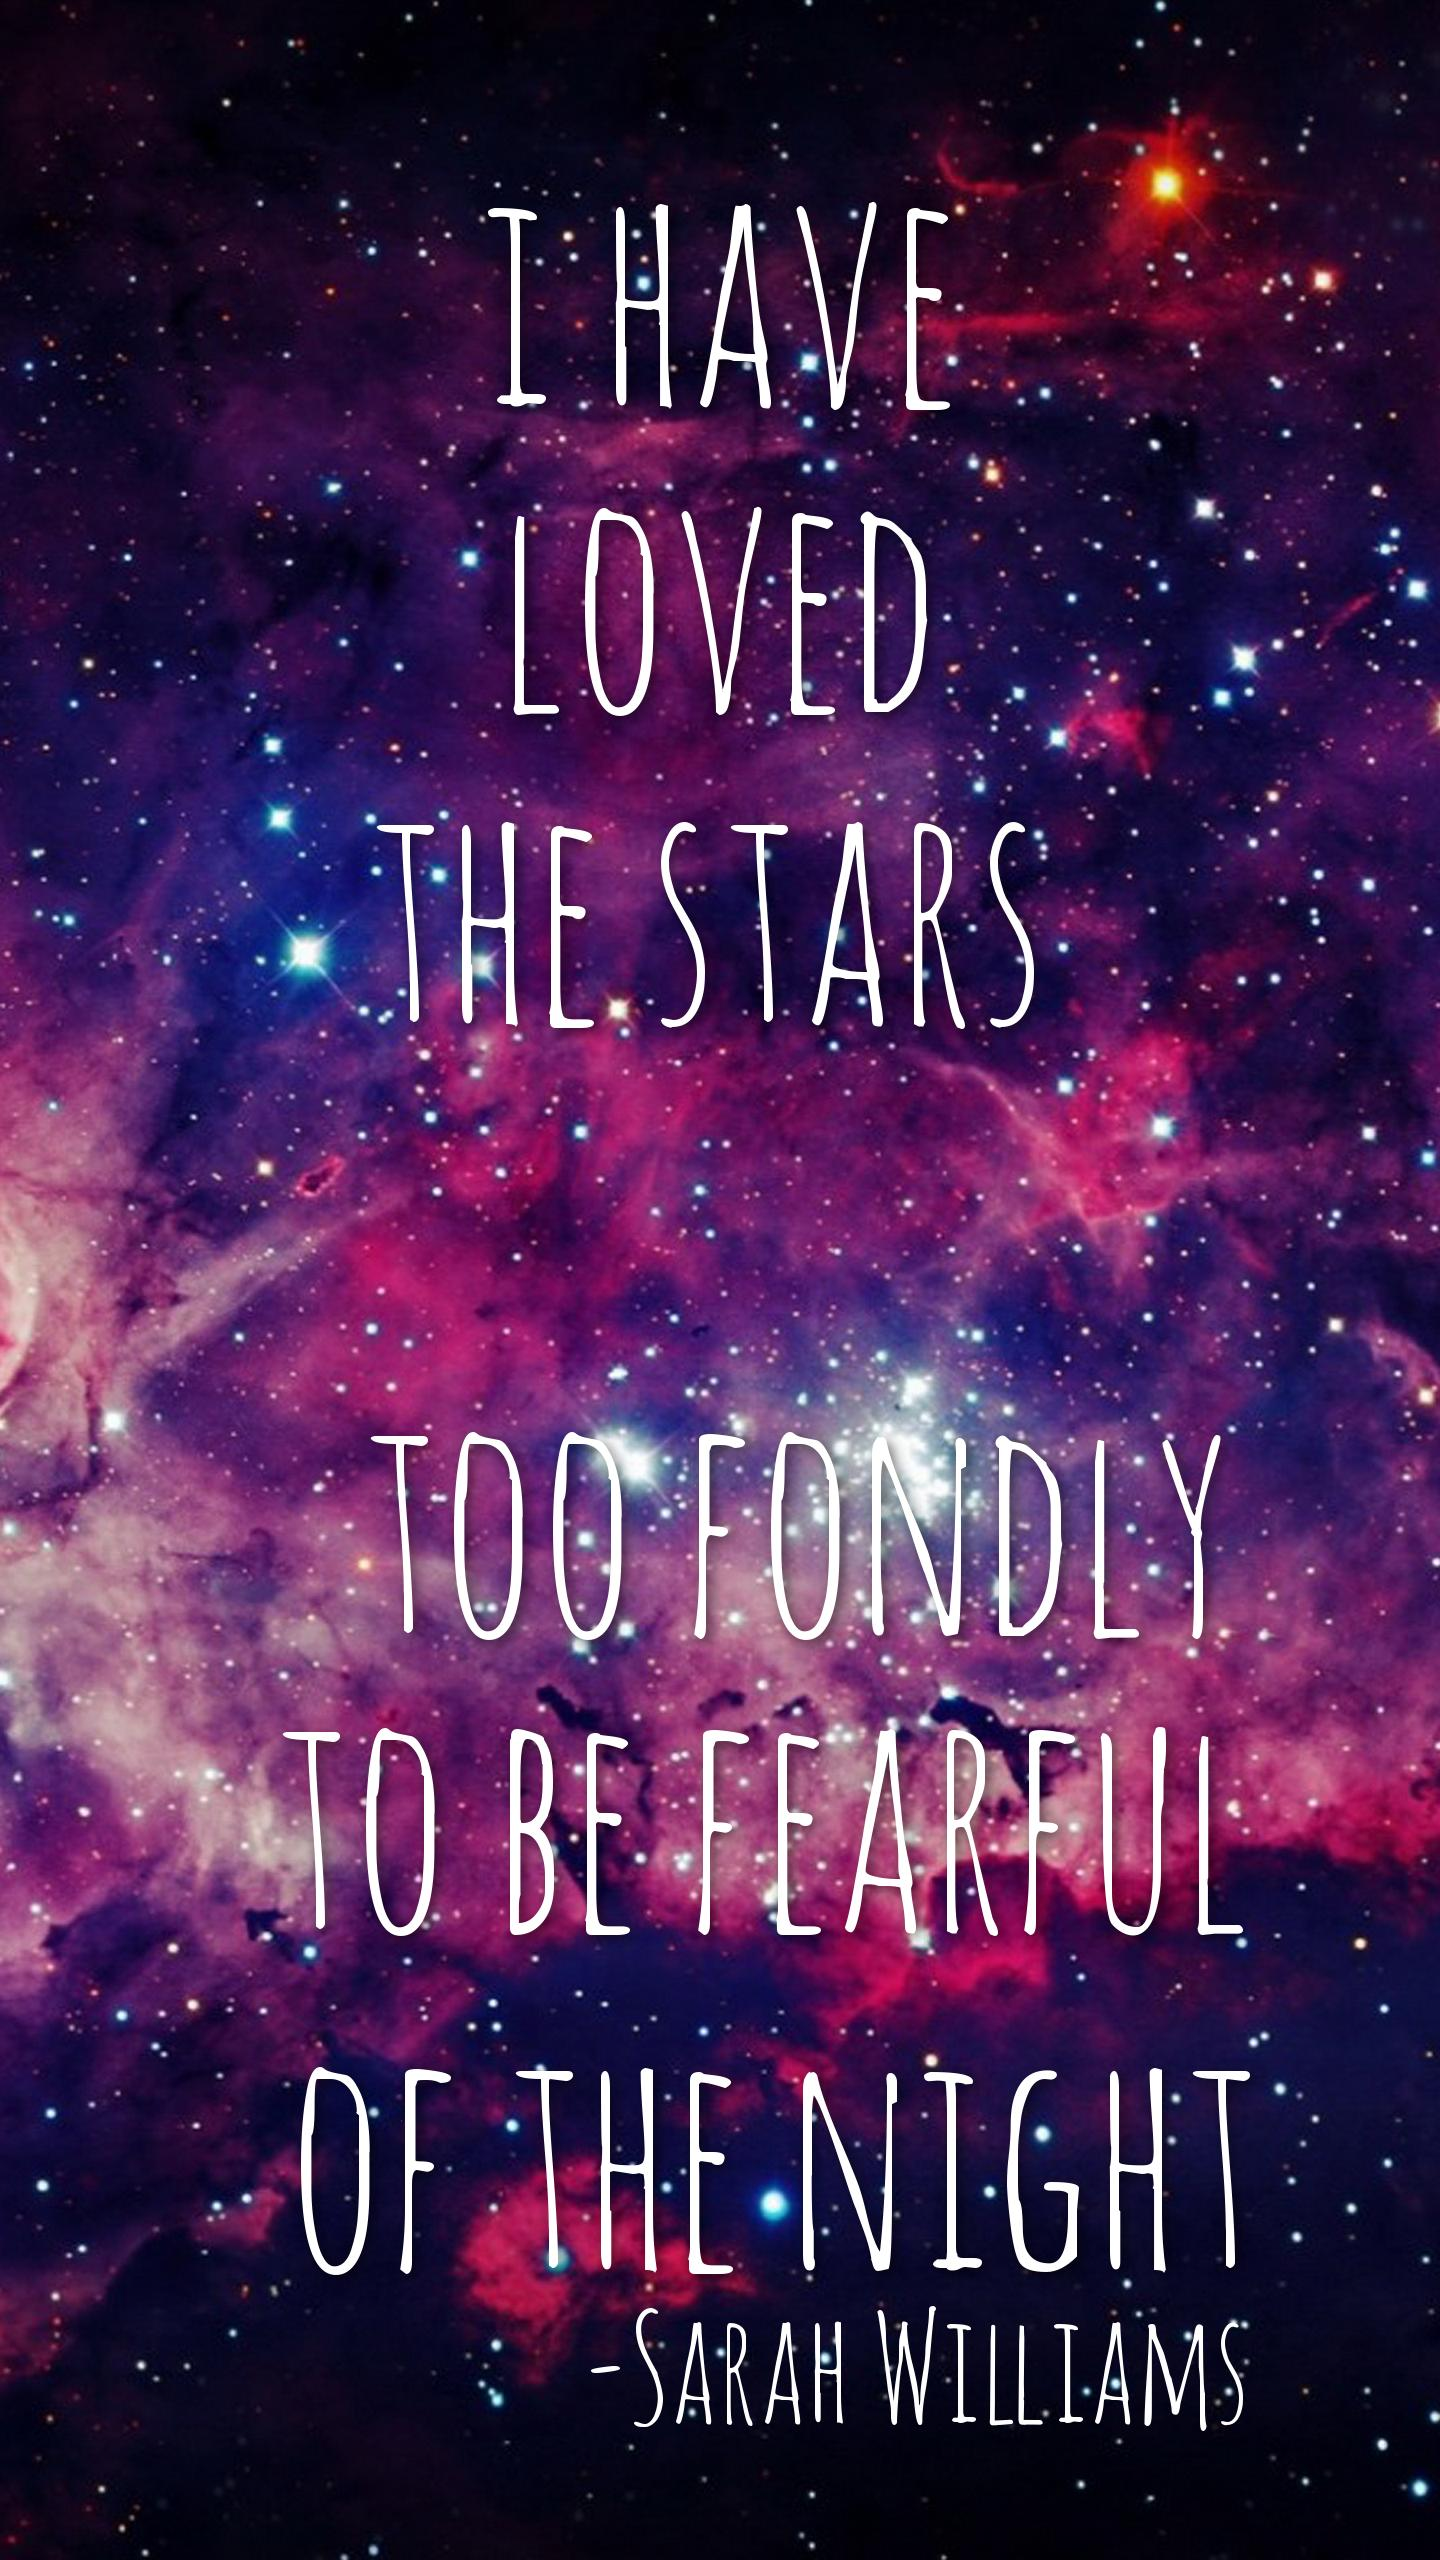 I Have Loved The Stars Sarah Williams Daily Quotes Sayings Pictures